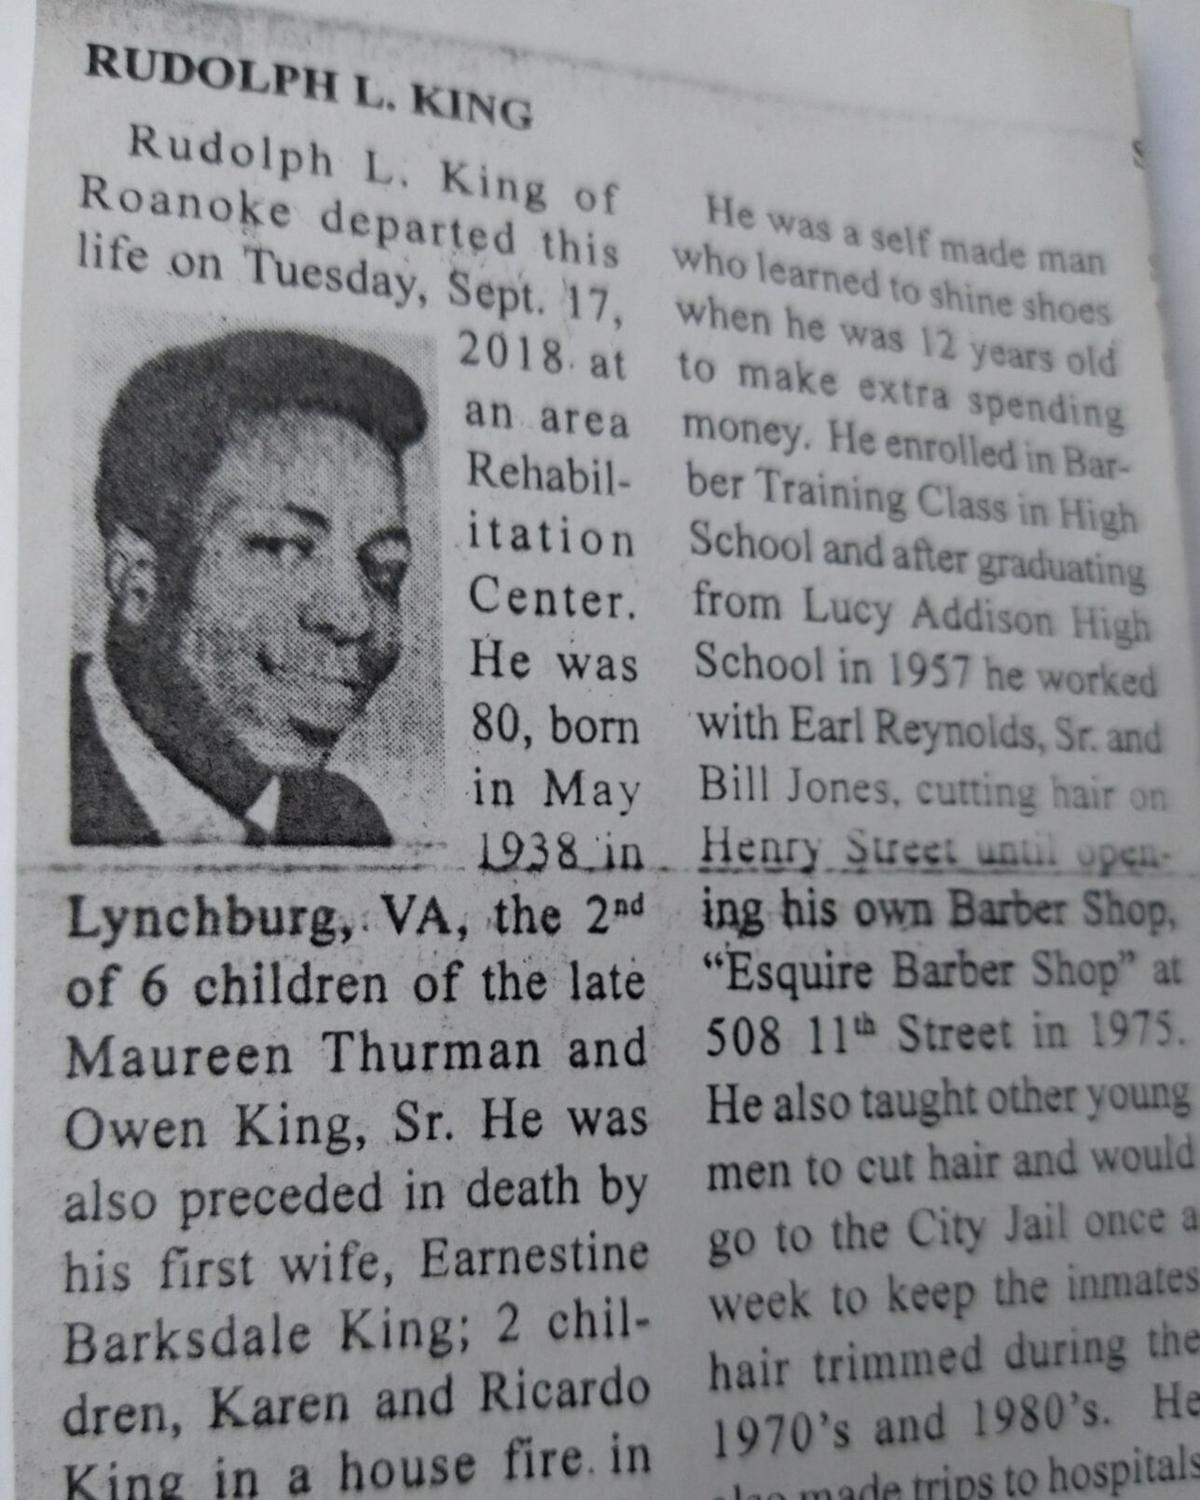 Rudolph King obit courtesy of Ann King